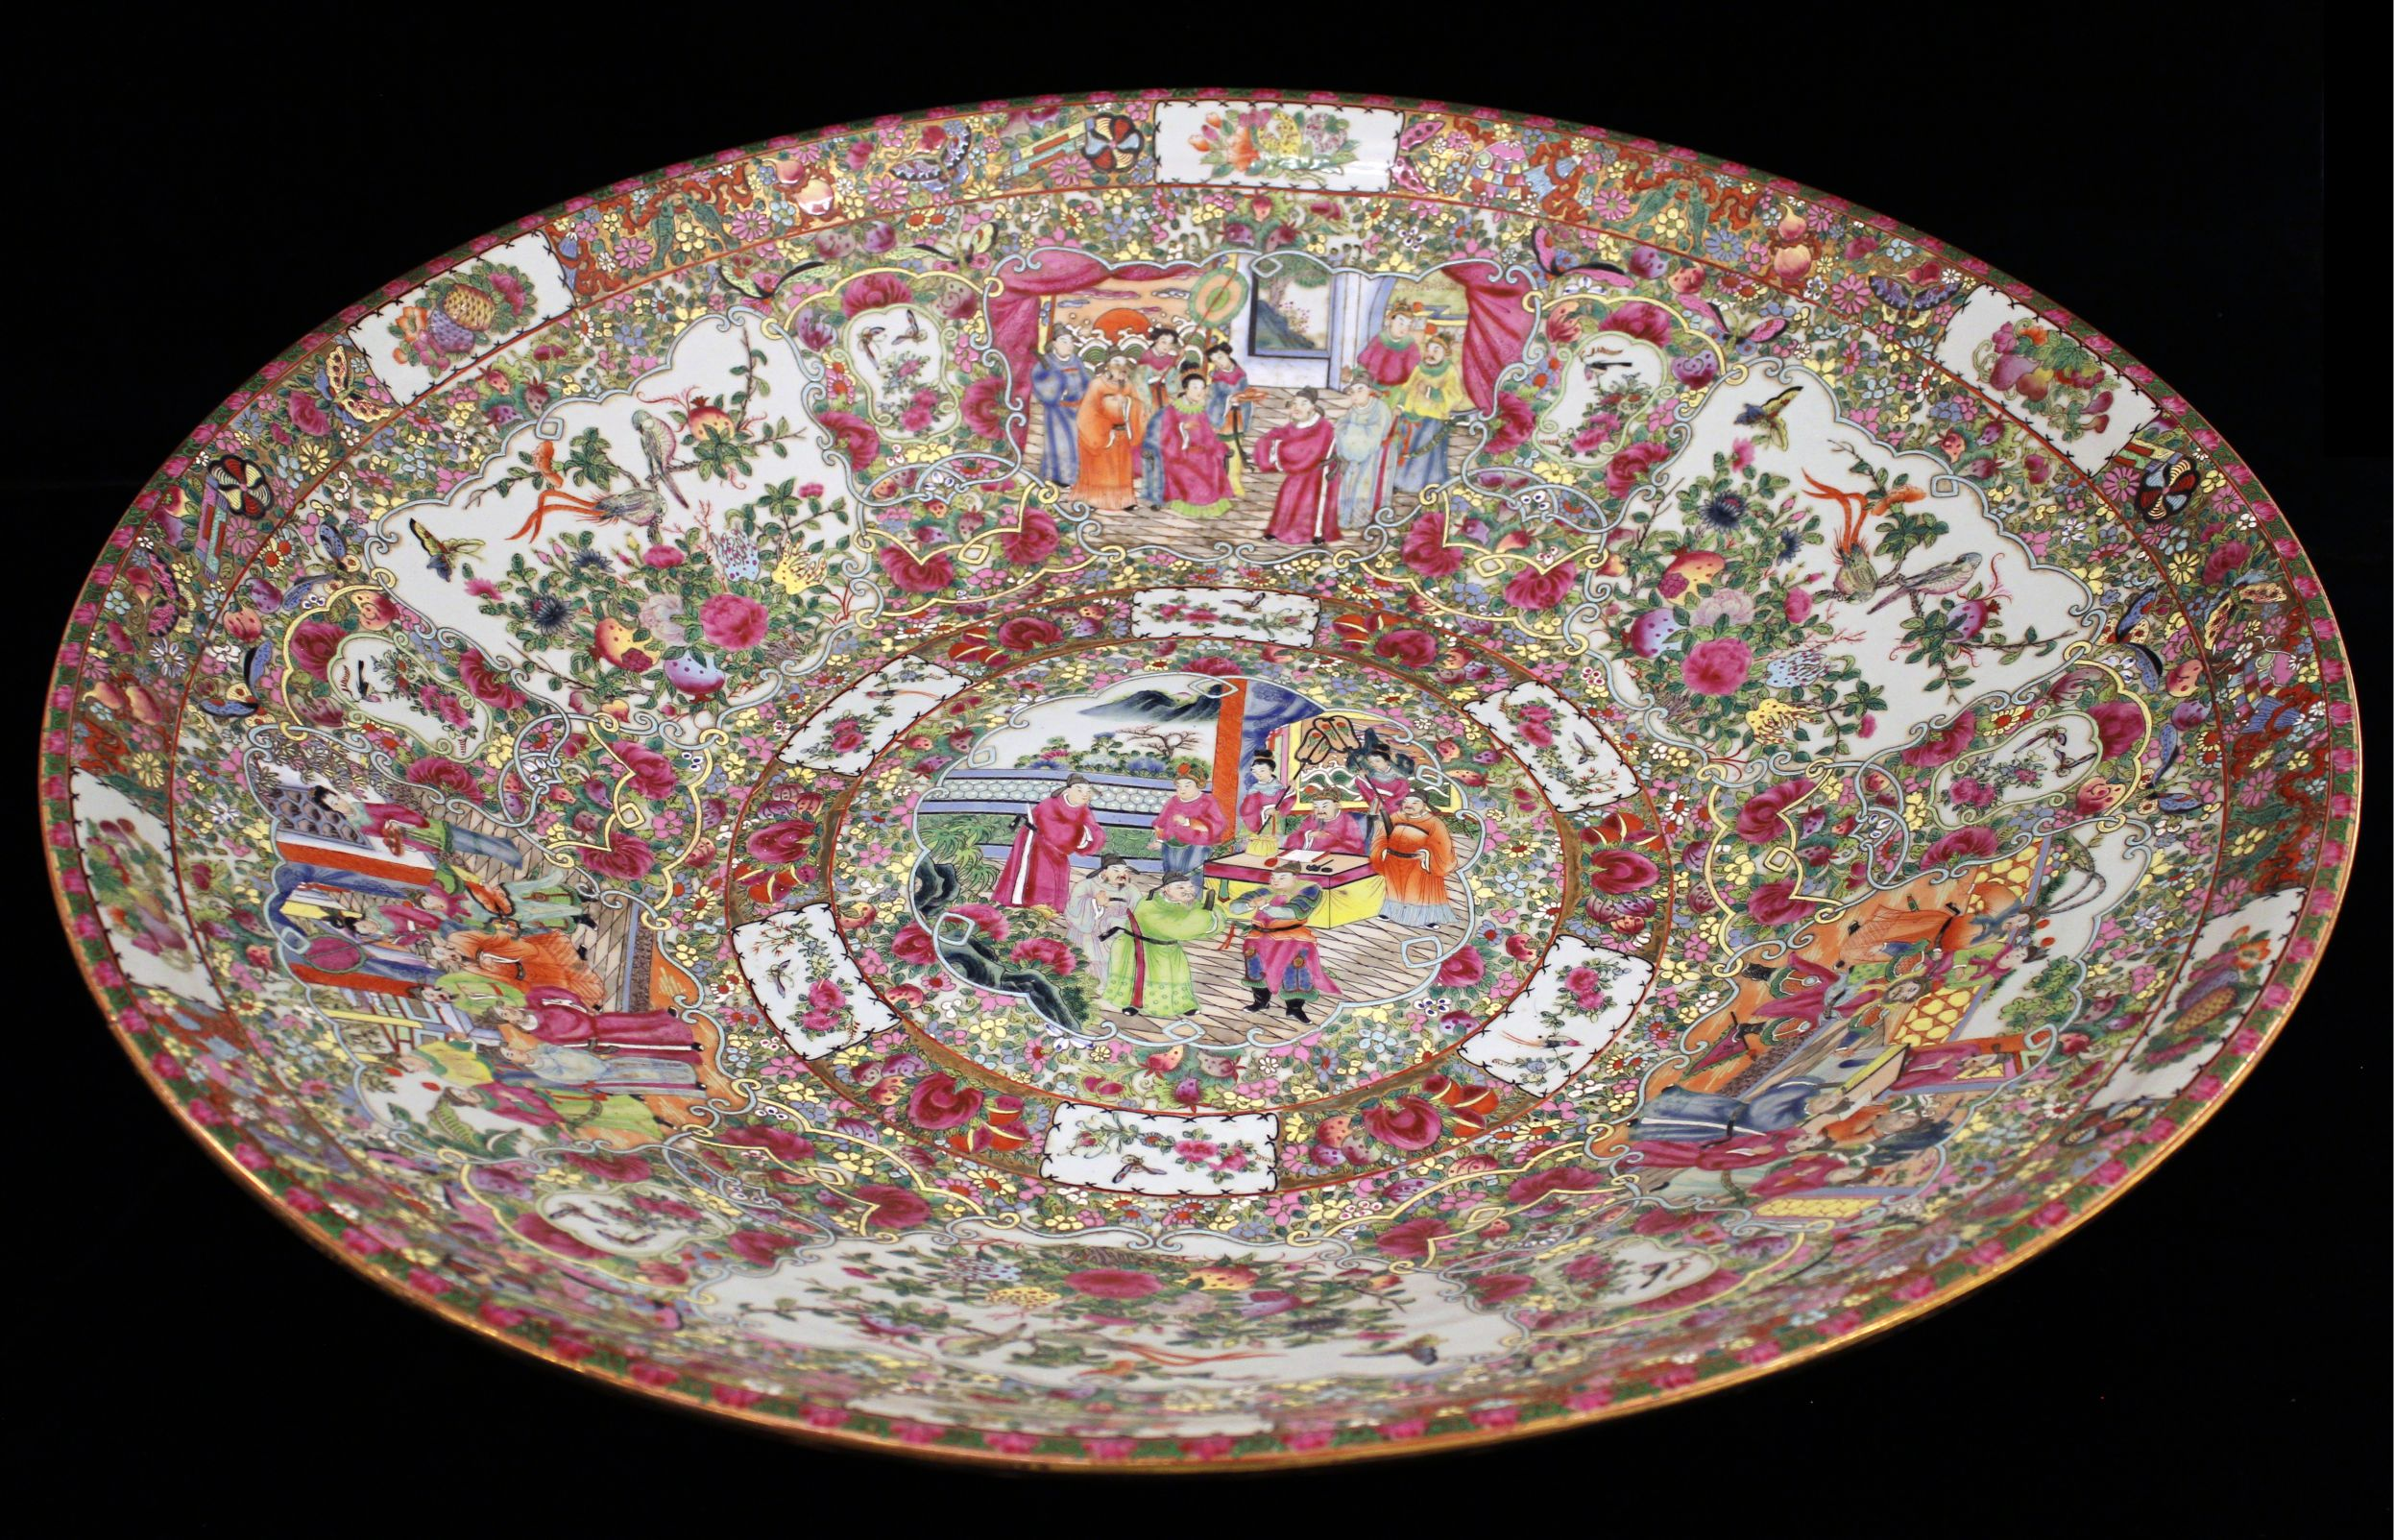 intricate painting on plate